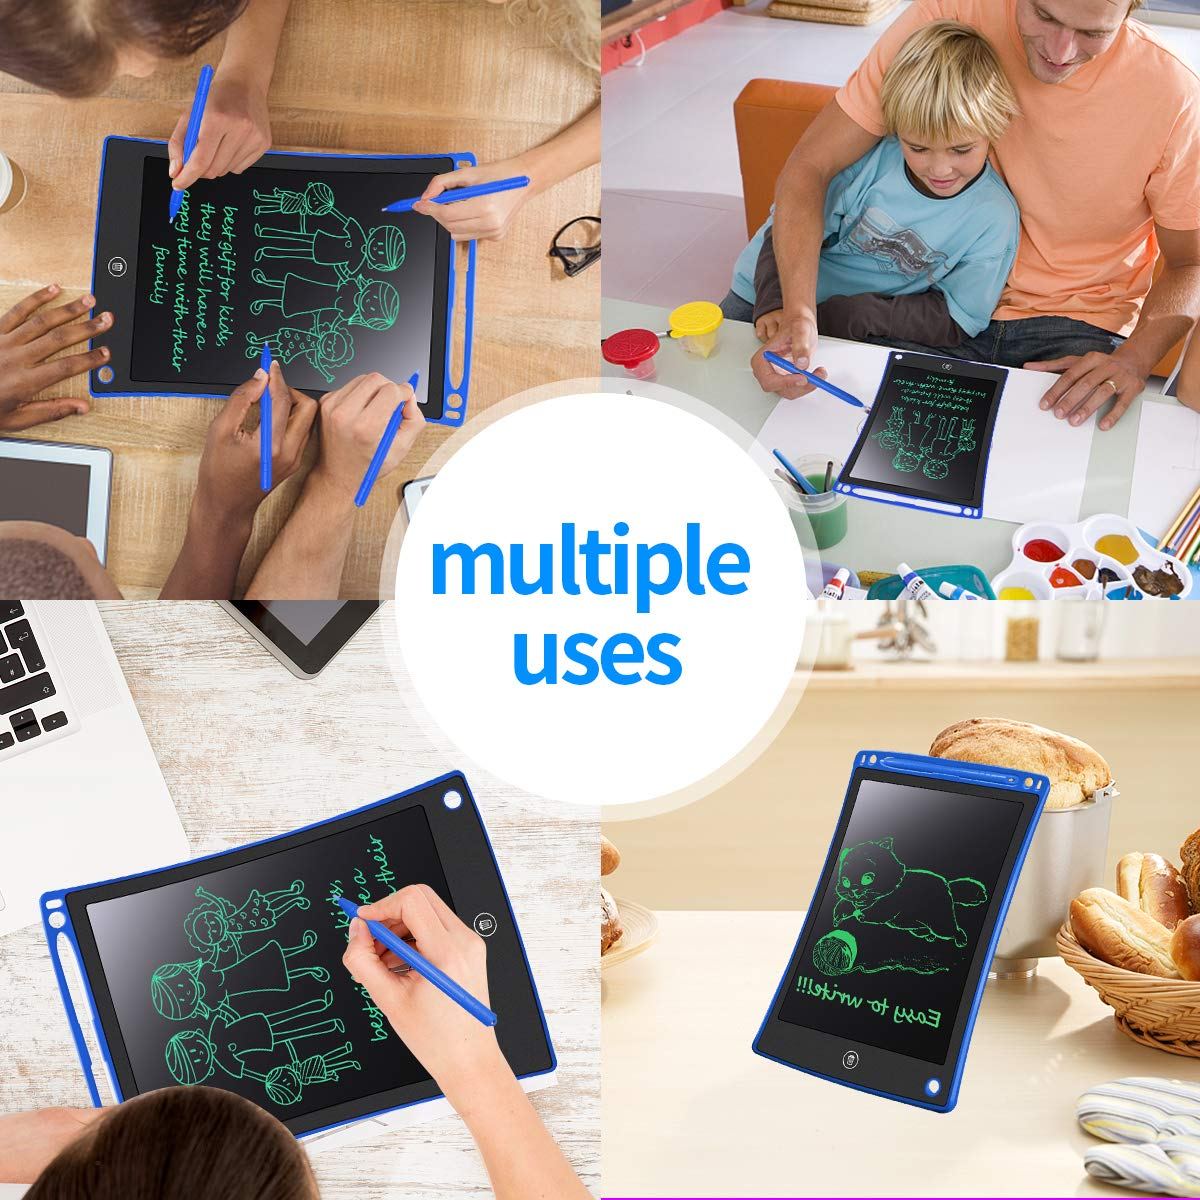 Fridge or Family Memo White MYMAHDI LCD Writing Tablet School,Office Electronic Drawing /& Writing Board 8.5 inch Doodle Board with Smart Writing Stylus for Kids Gifts